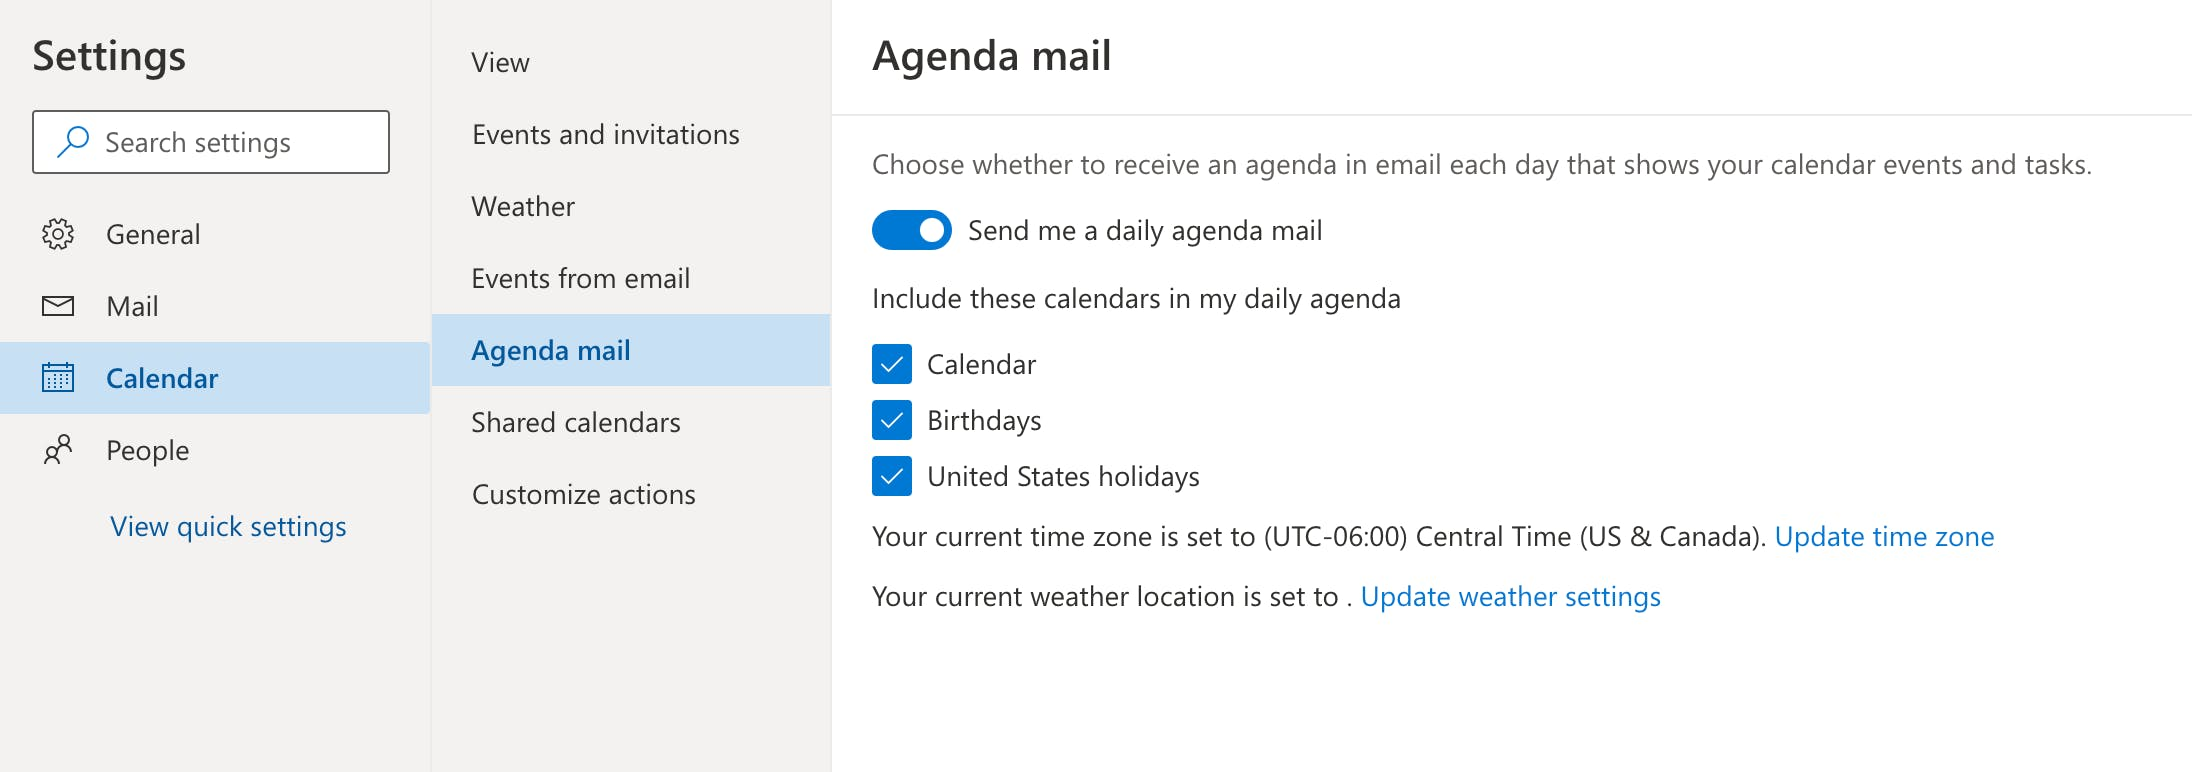 Outlook Agenda Mail